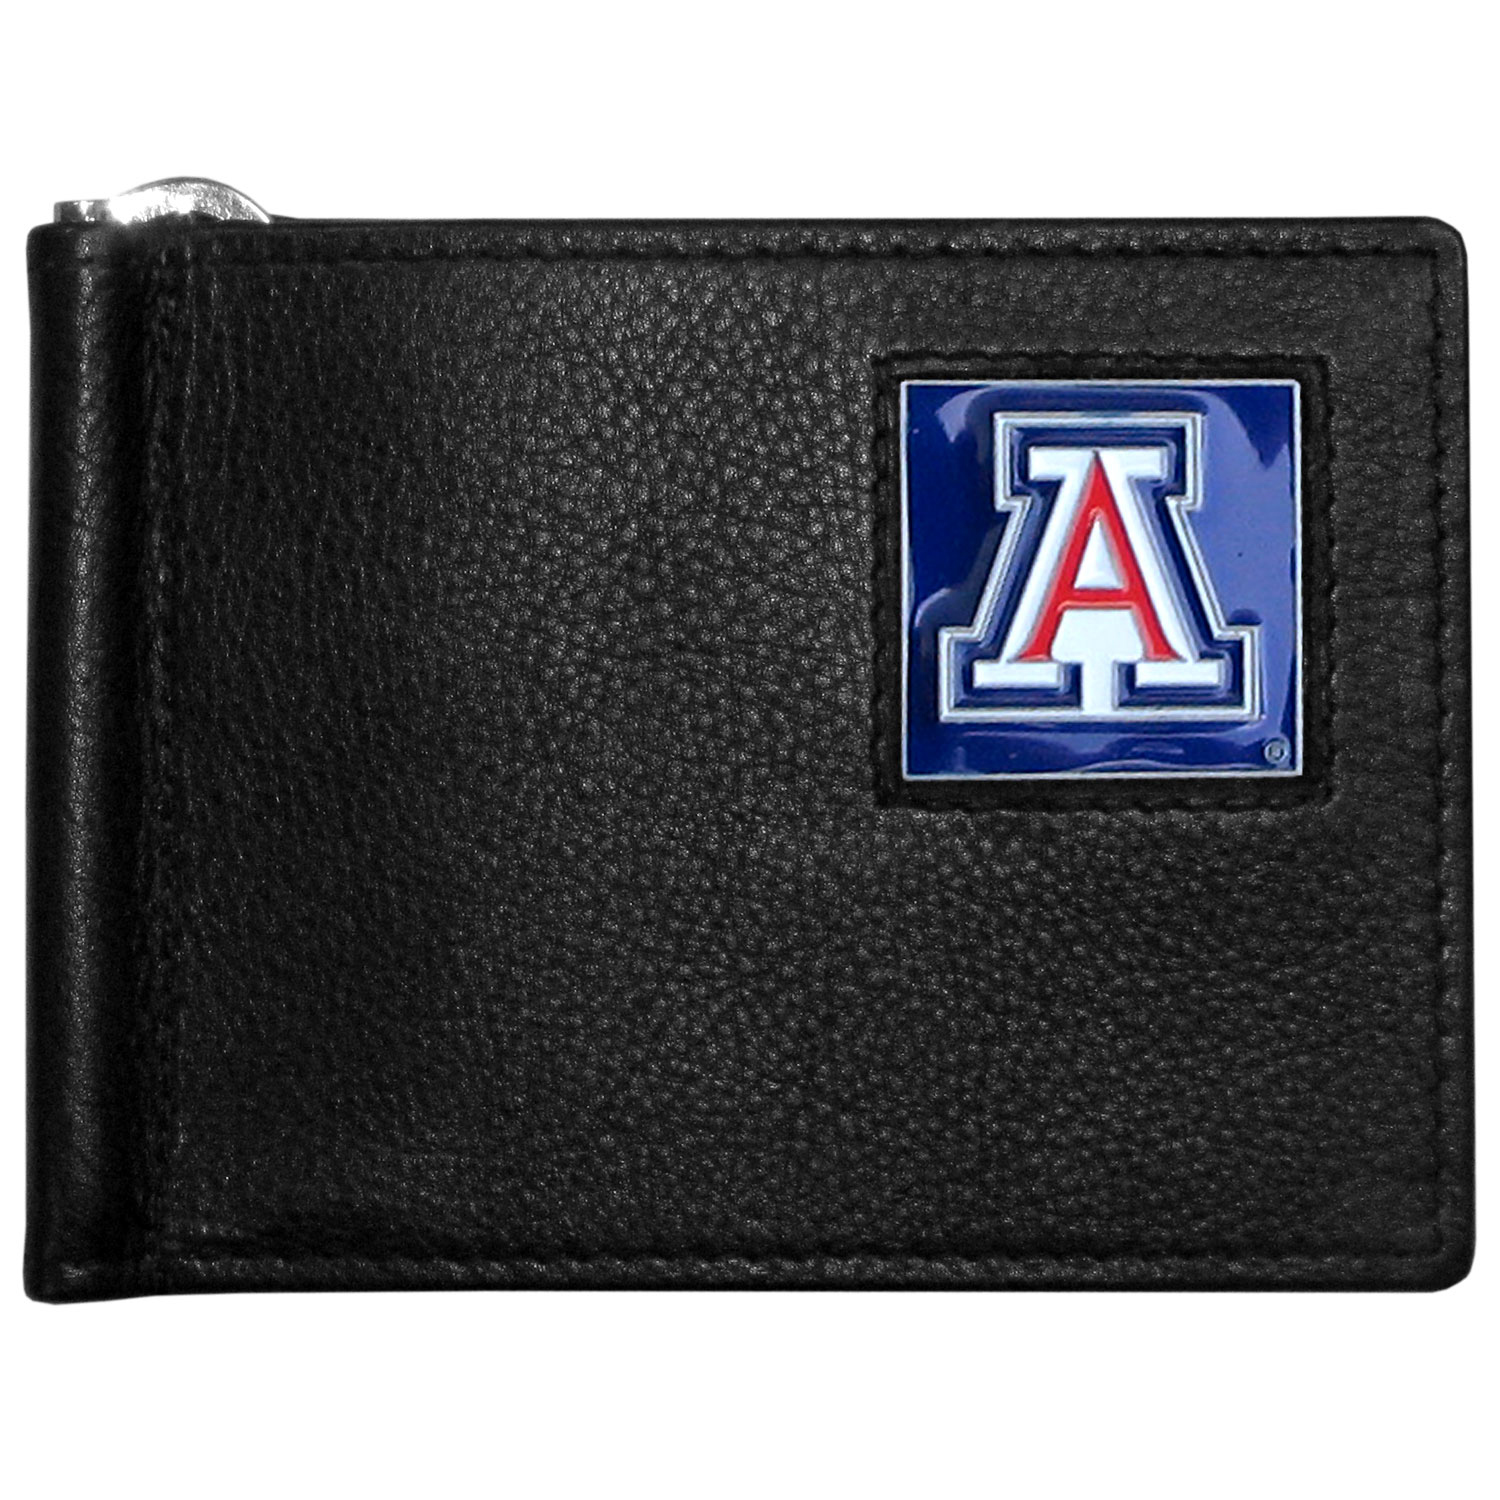 Arizona Wildcats Leather Bill Clip Wallet - This cool new style wallet features an inner, metal bill clip that lips up for easy access. The super slim wallet holds tons of stuff with ample pockets, credit card slots & windowed ID slot.  The wallet is made of genuine fine grain leather and it finished with a metal Arizona Wildcats emblem. The wallet is shipped in gift box packaging.